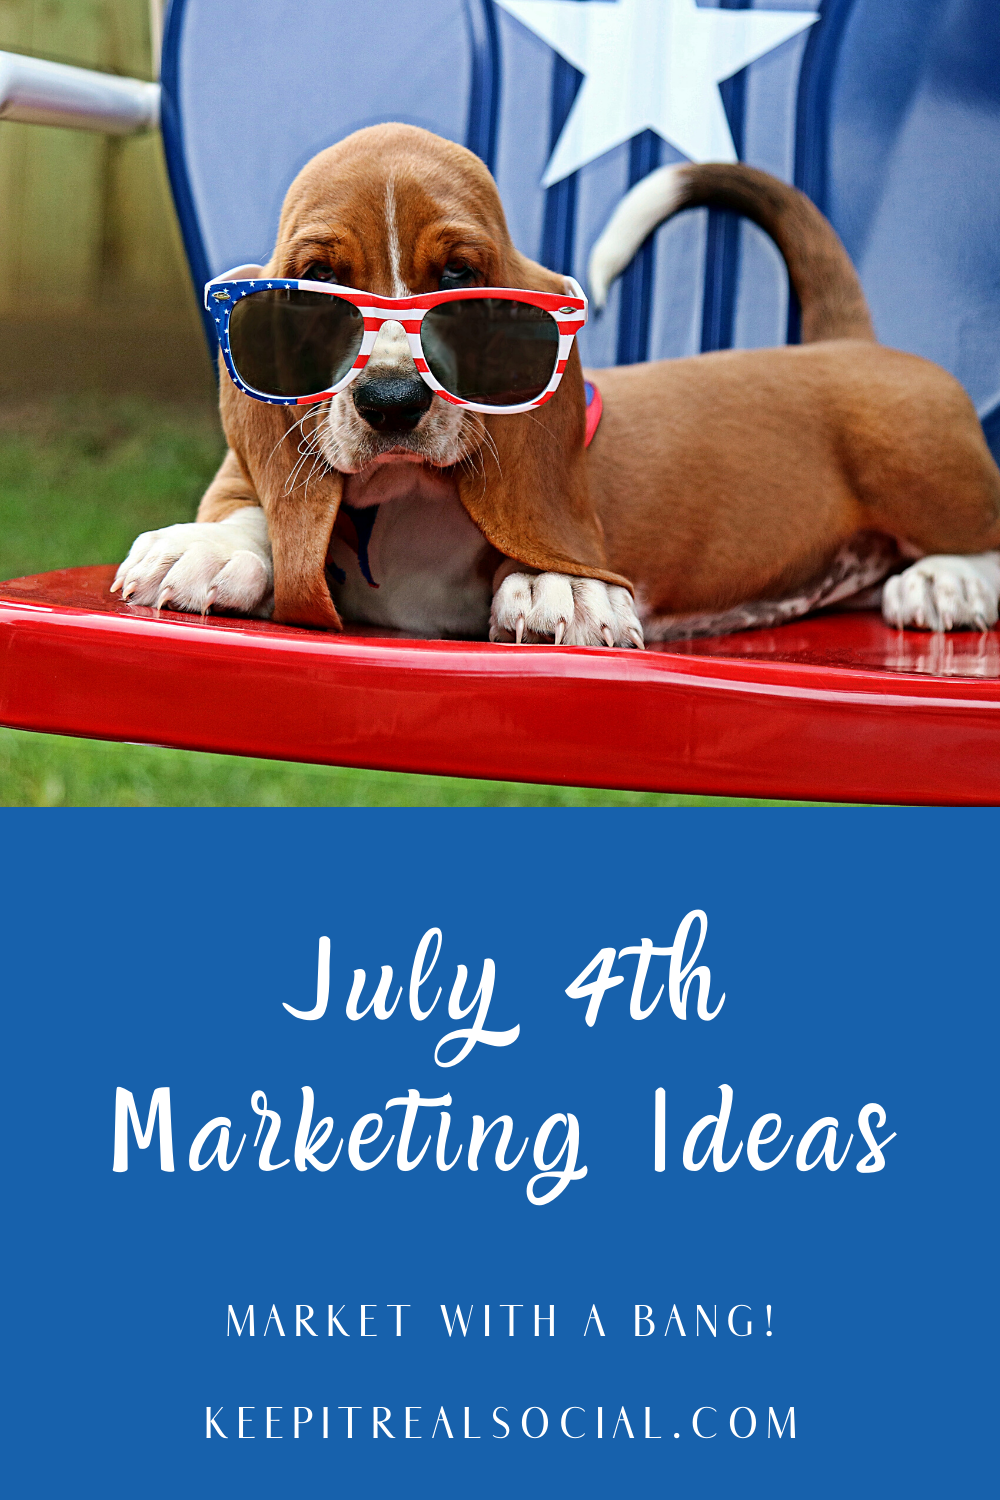 Fourth of July Marketing Ideas from the social media marketing agency Keep it Real Social